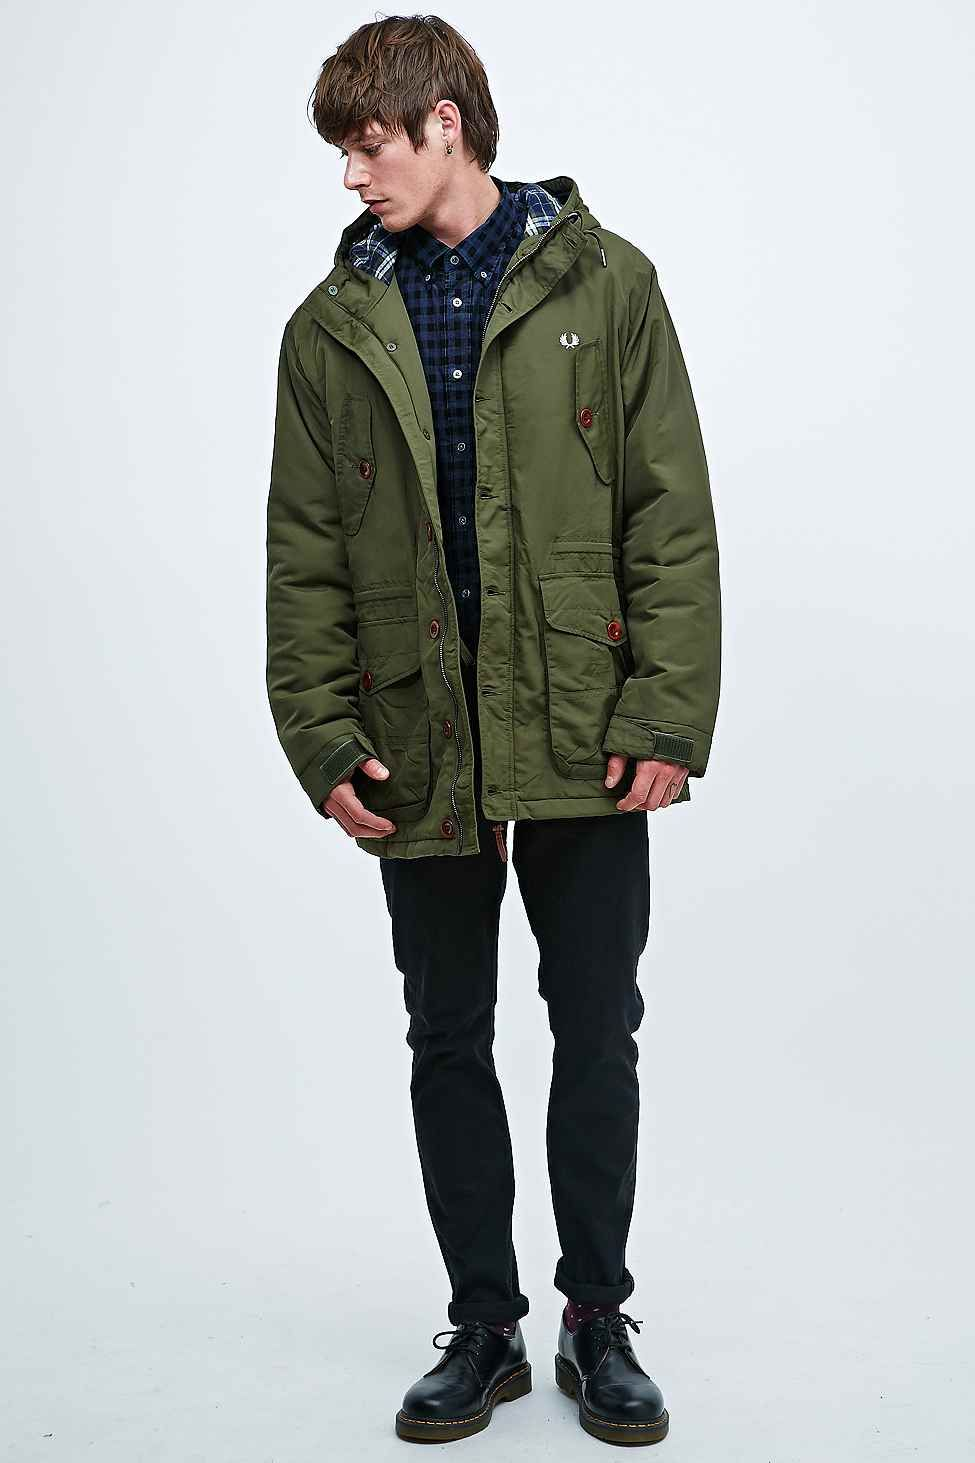 f406f92fc73a5 Fred Perry Wadded Mountain Parka in Green   Clobber   Parka style ...